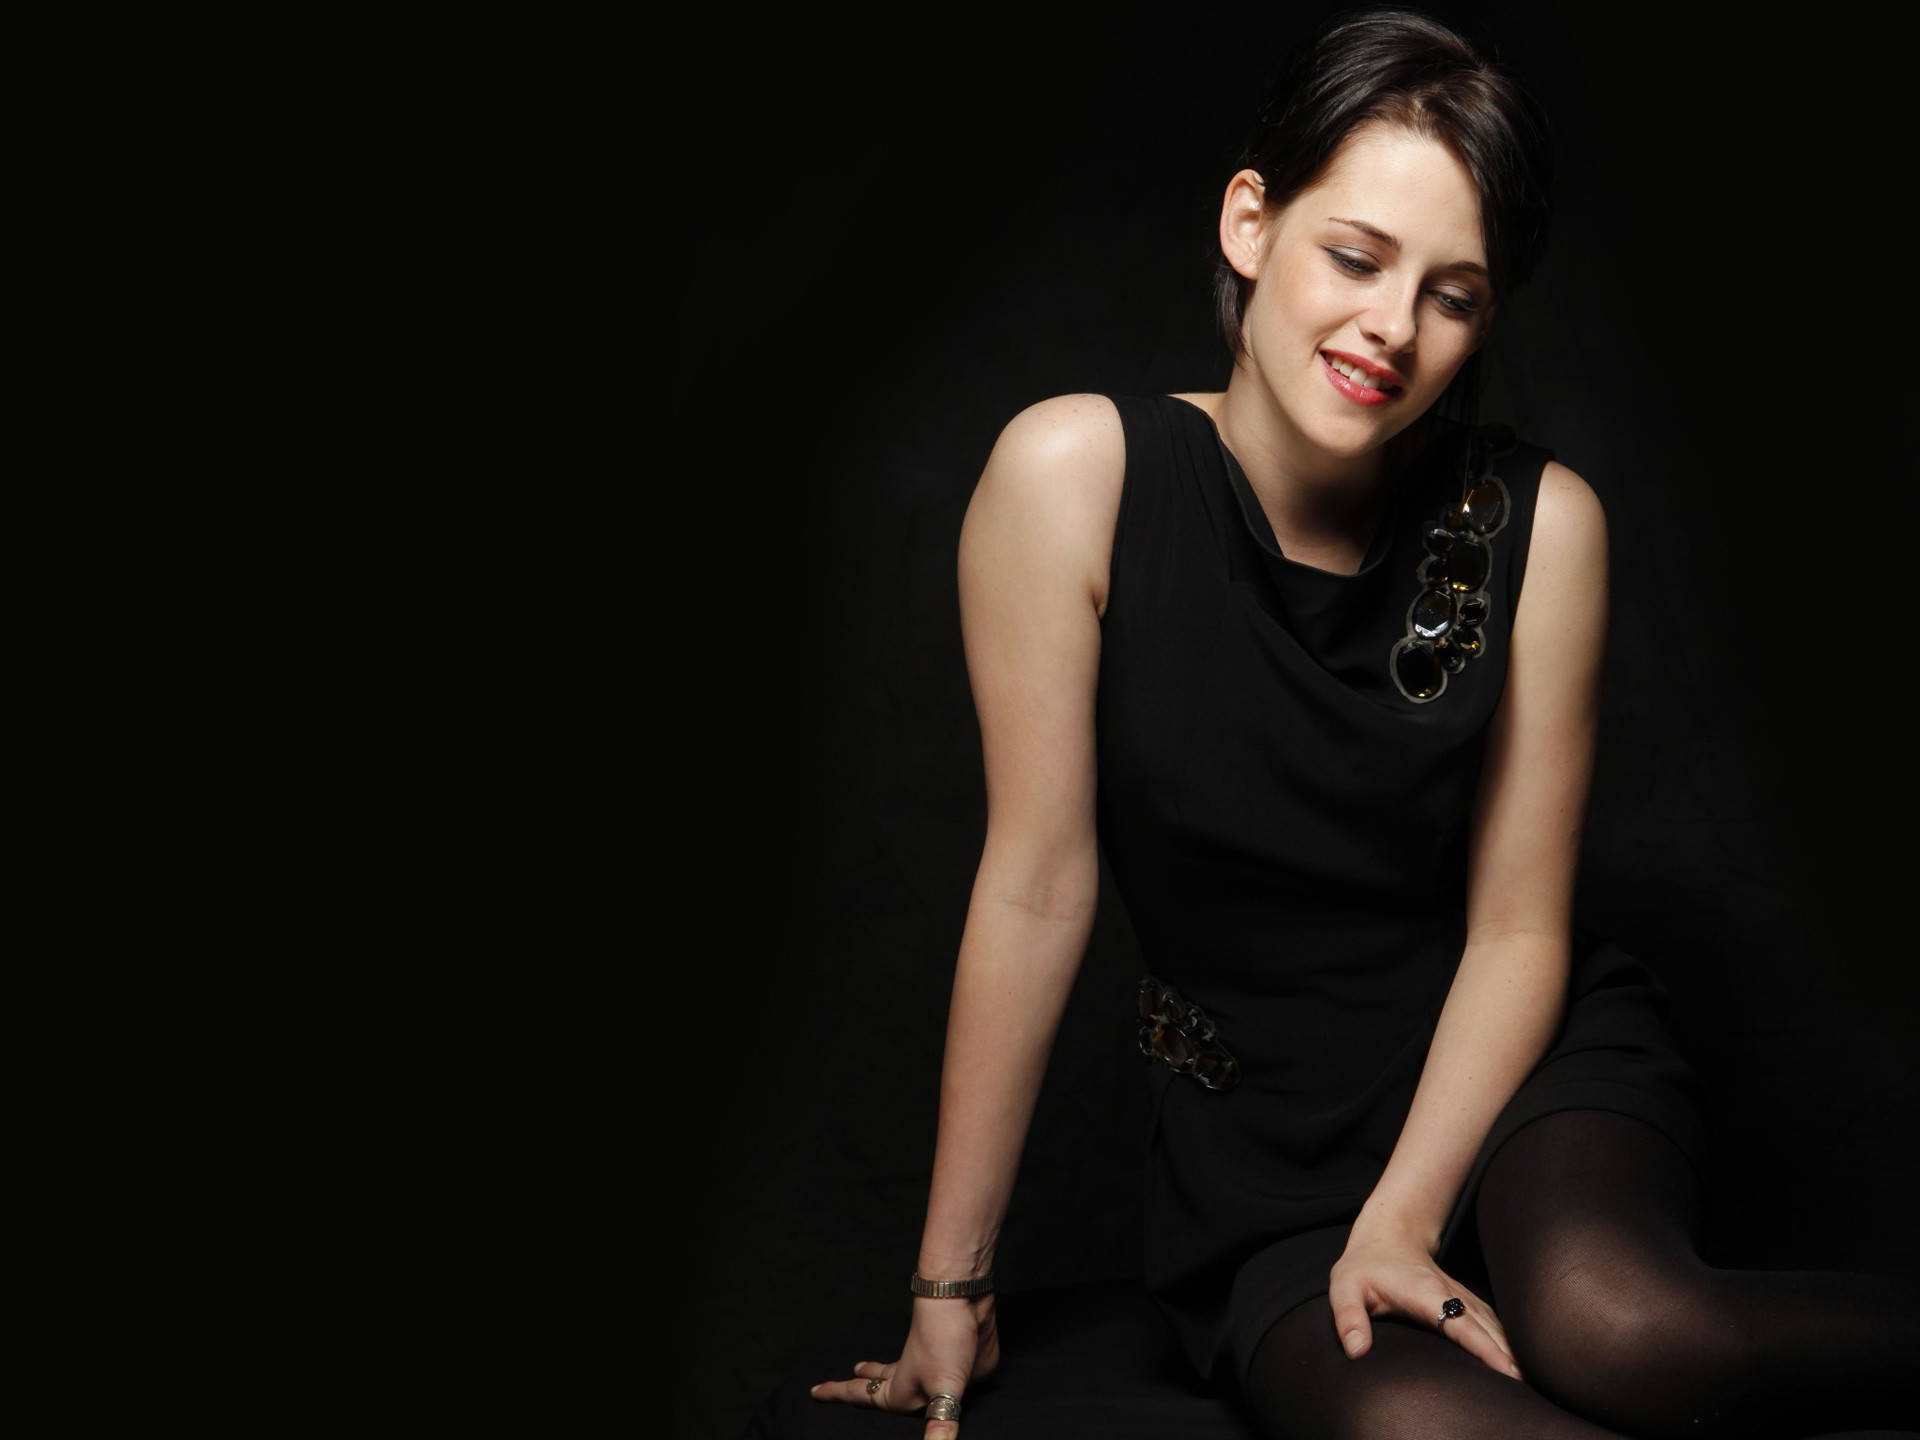 Res: 1920x1440, Tags: Beautiful Kristen Stewart